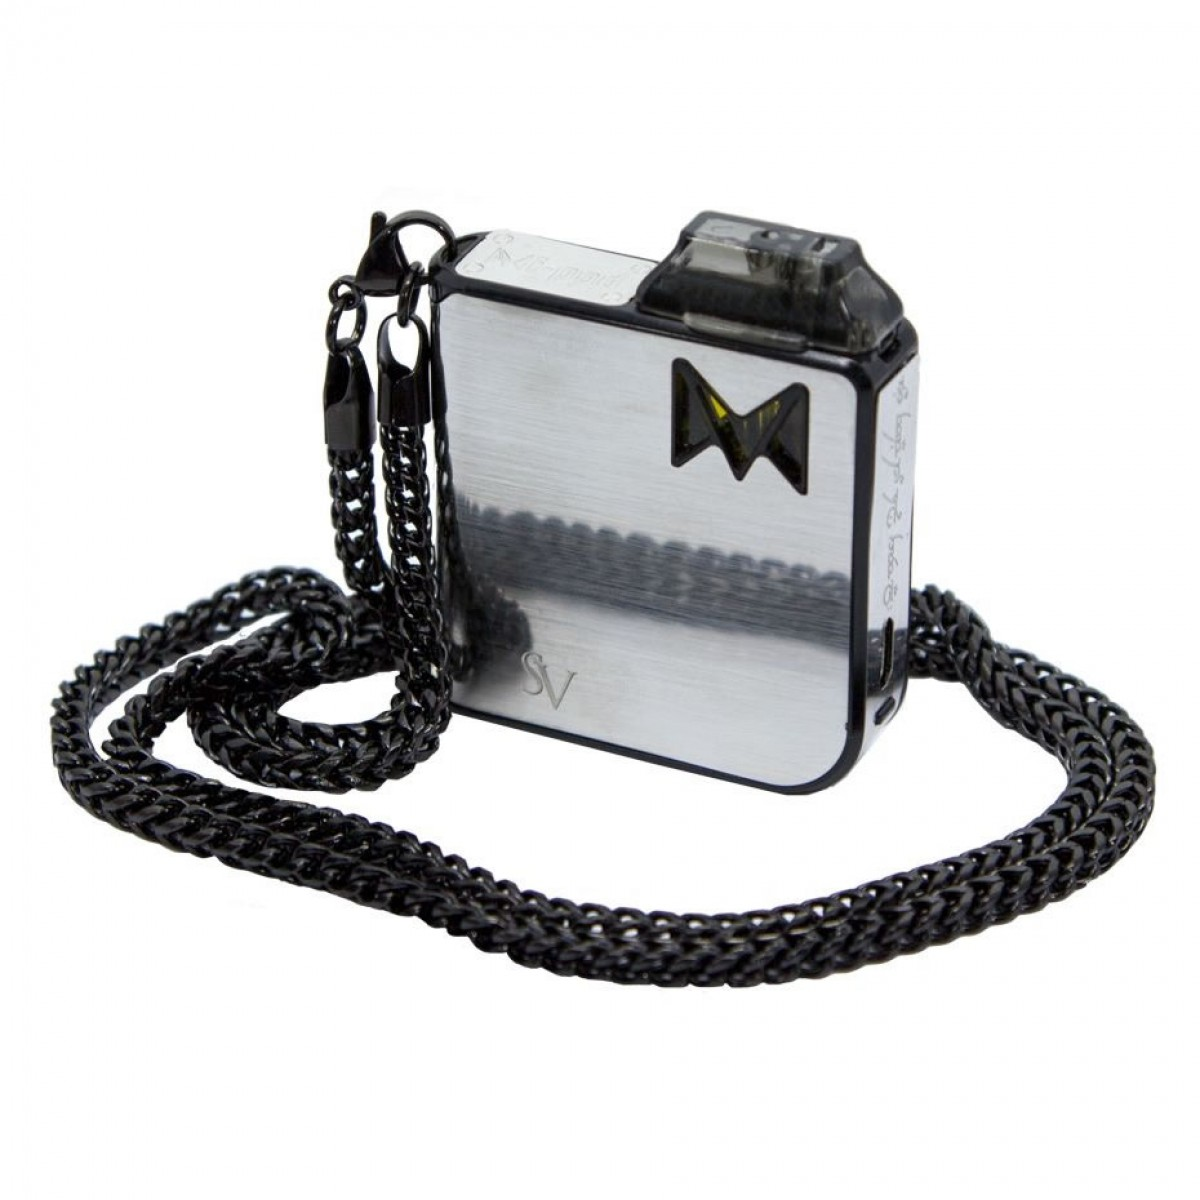 MI-POD & MI-ONE NECK CHAIN BY MI-ONE BRANDS